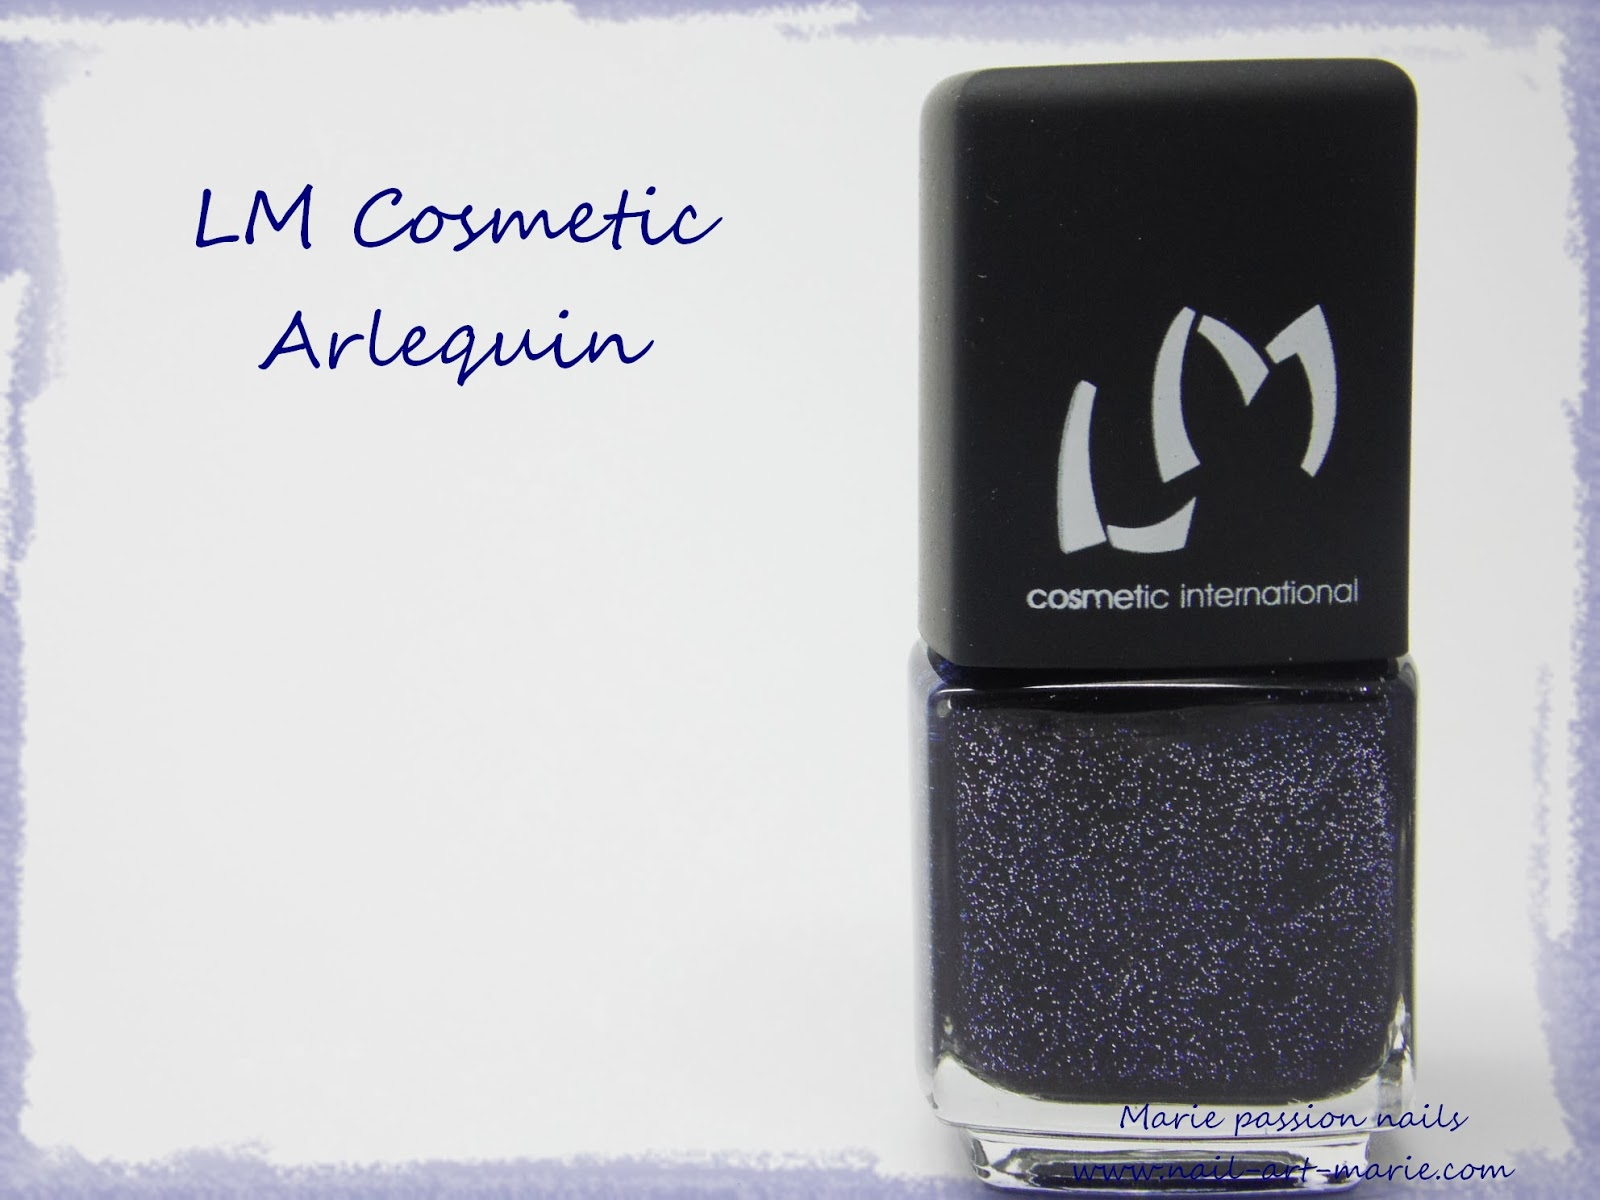 LM Cosmetic Arlequin1